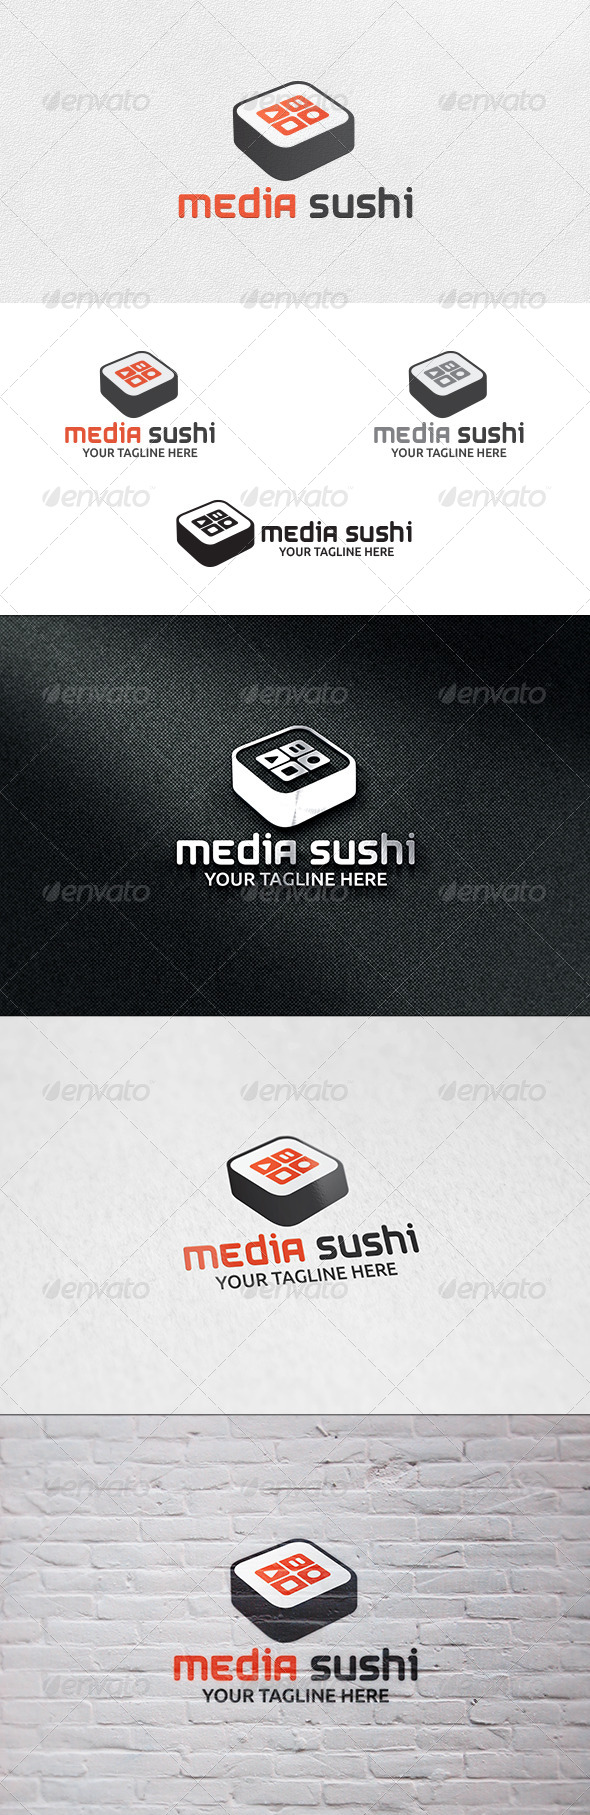 GraphicRiver Media Sushi Logo Template 7152638